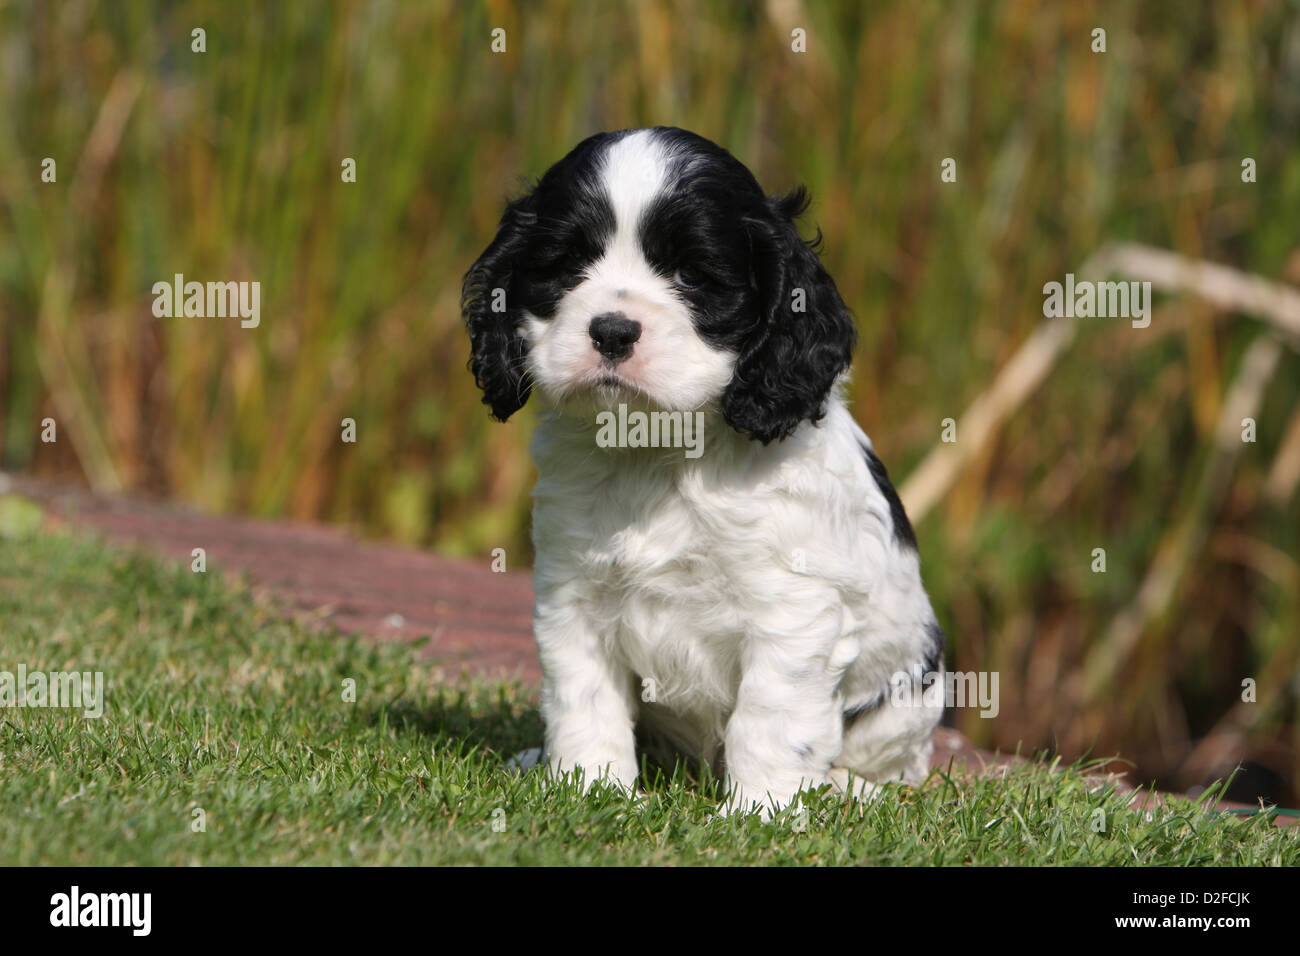 Dog American Cocker Spaniel Puppy Black And White Sitting In A Stock Photo Alamy